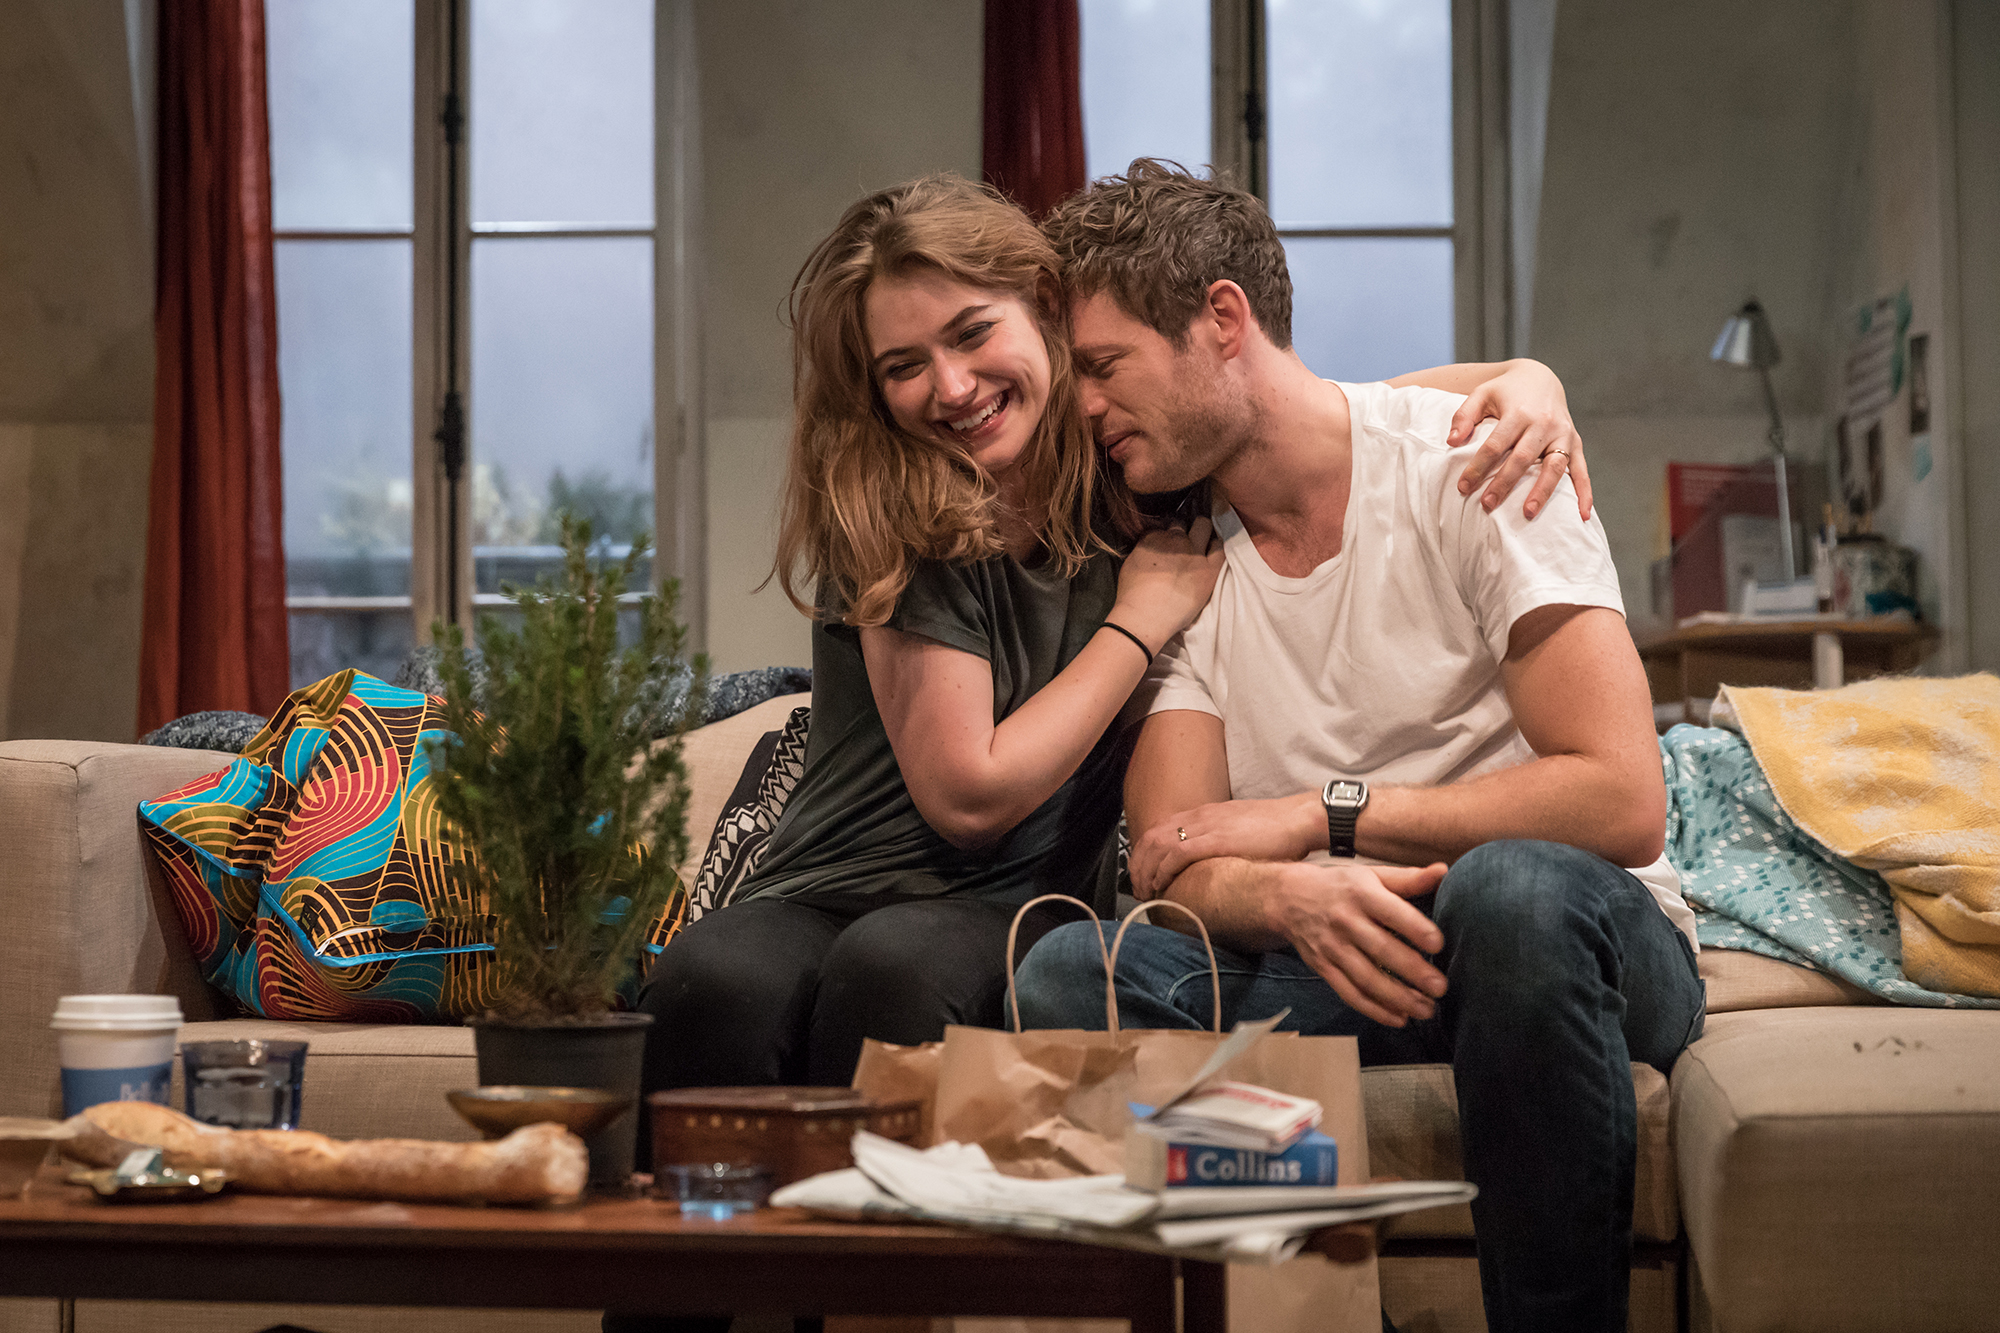 Imogen-Poots-Abby-James-Norton-Zack-in-Belleville-at-the-Donmar-Warehouse-director-Michael-Longhurst-designer-Tom-Scutt.-Photo-by-Marc-Brenner-4